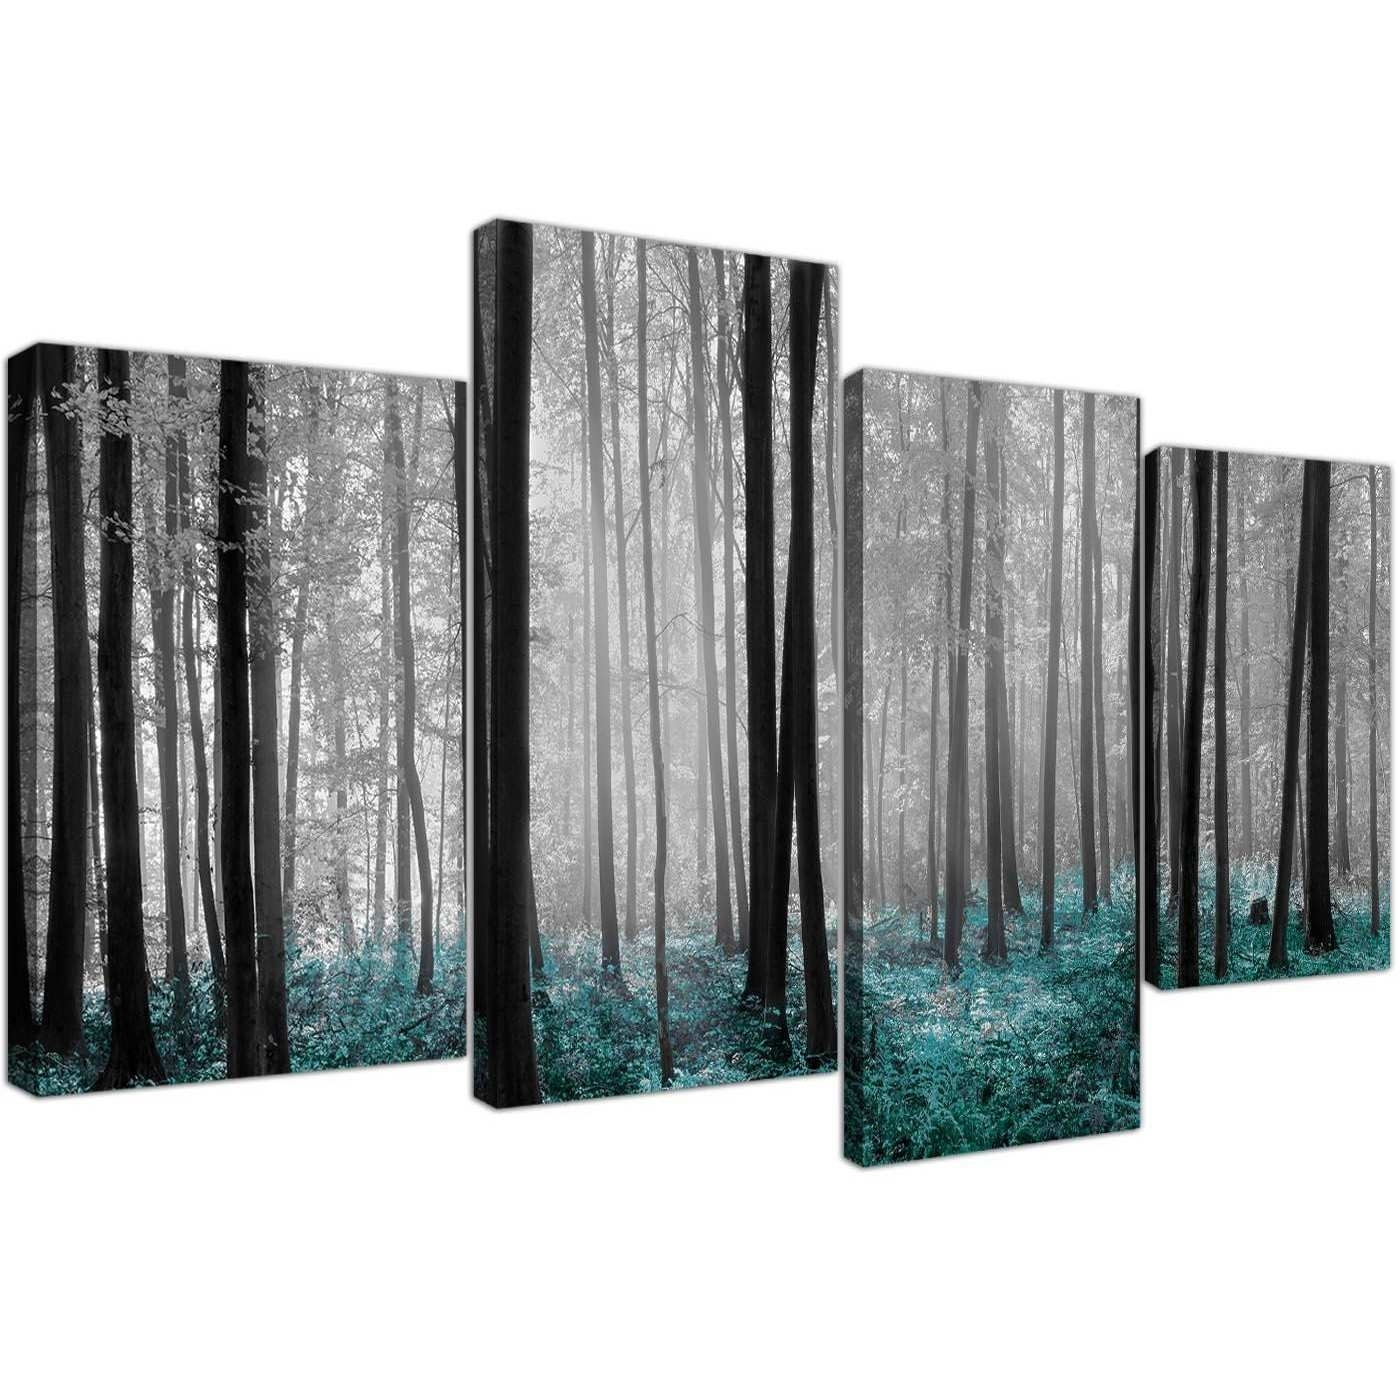 Discount Canvas Art Beautiful Black & White Teal Forest Trees Canvas With Regard To Current Discount Wall Art (View 6 of 20)